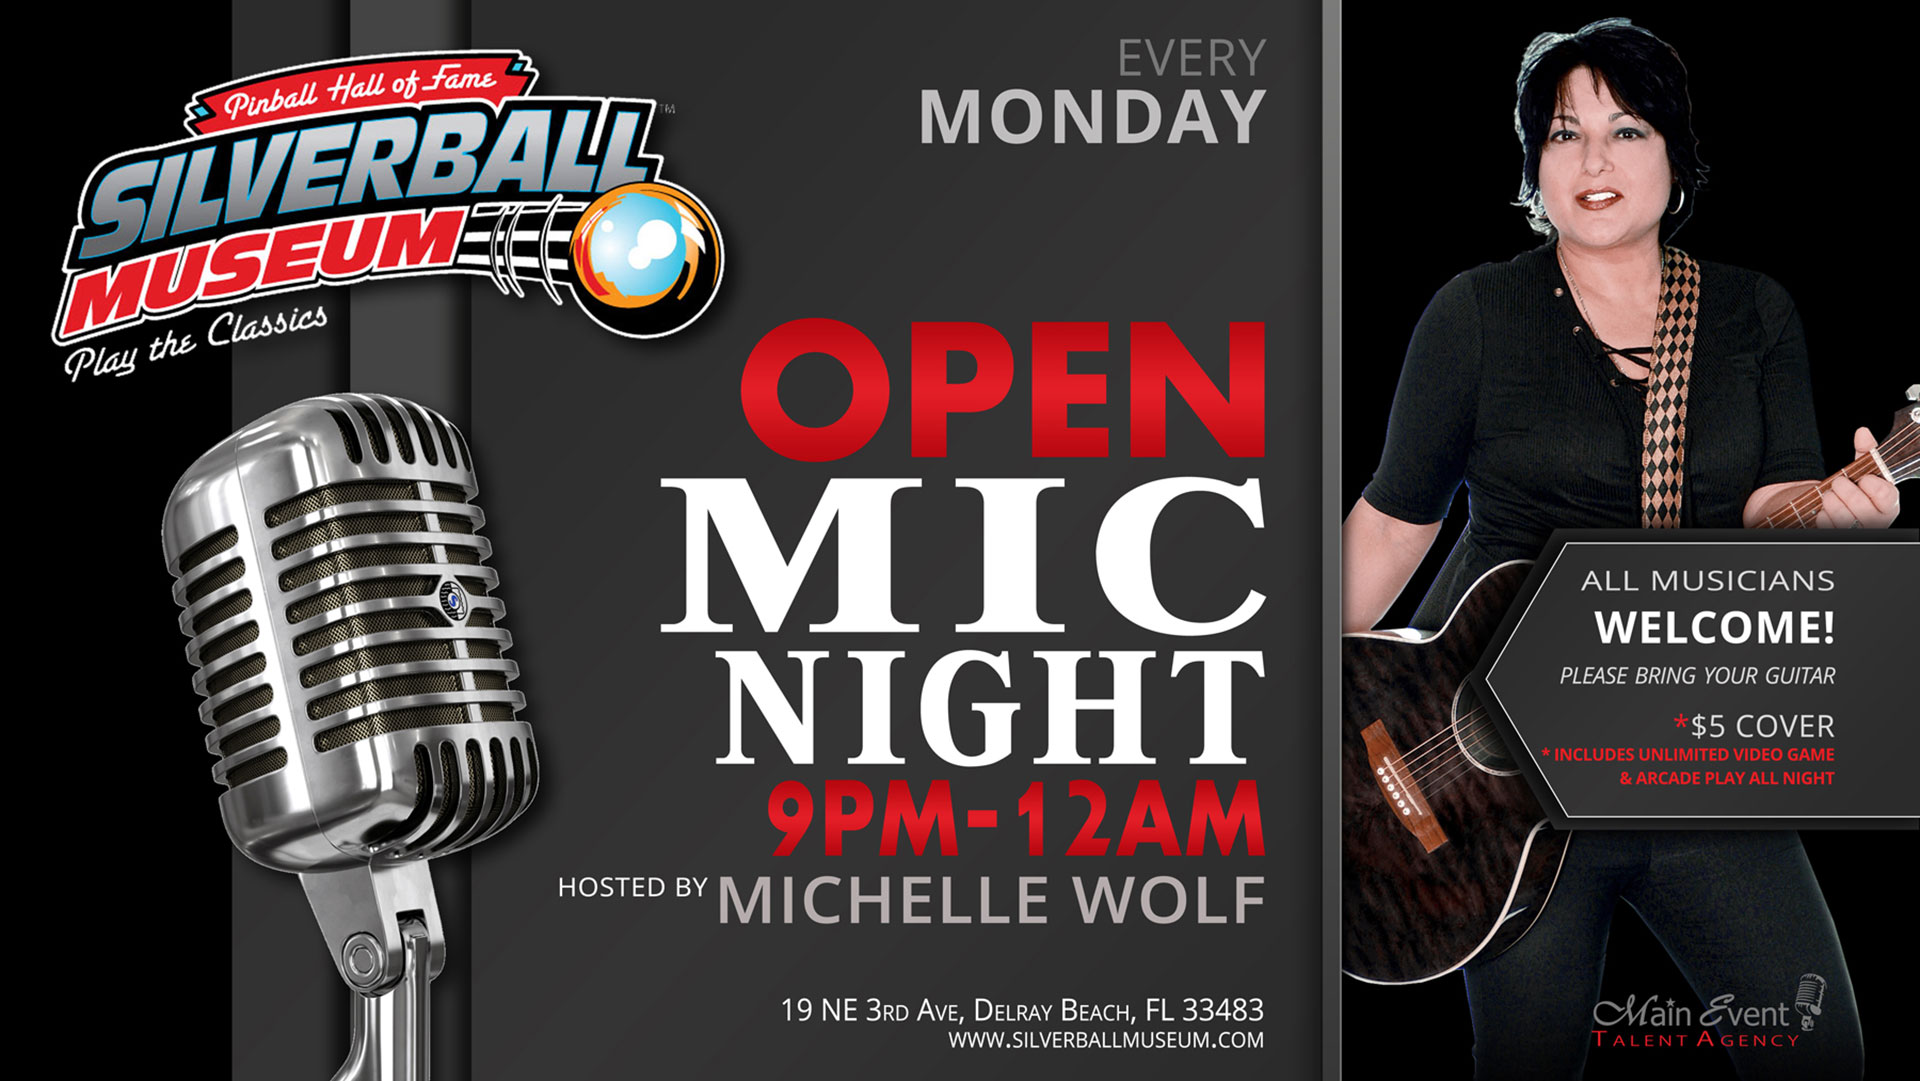 Silverball Open Mic Night